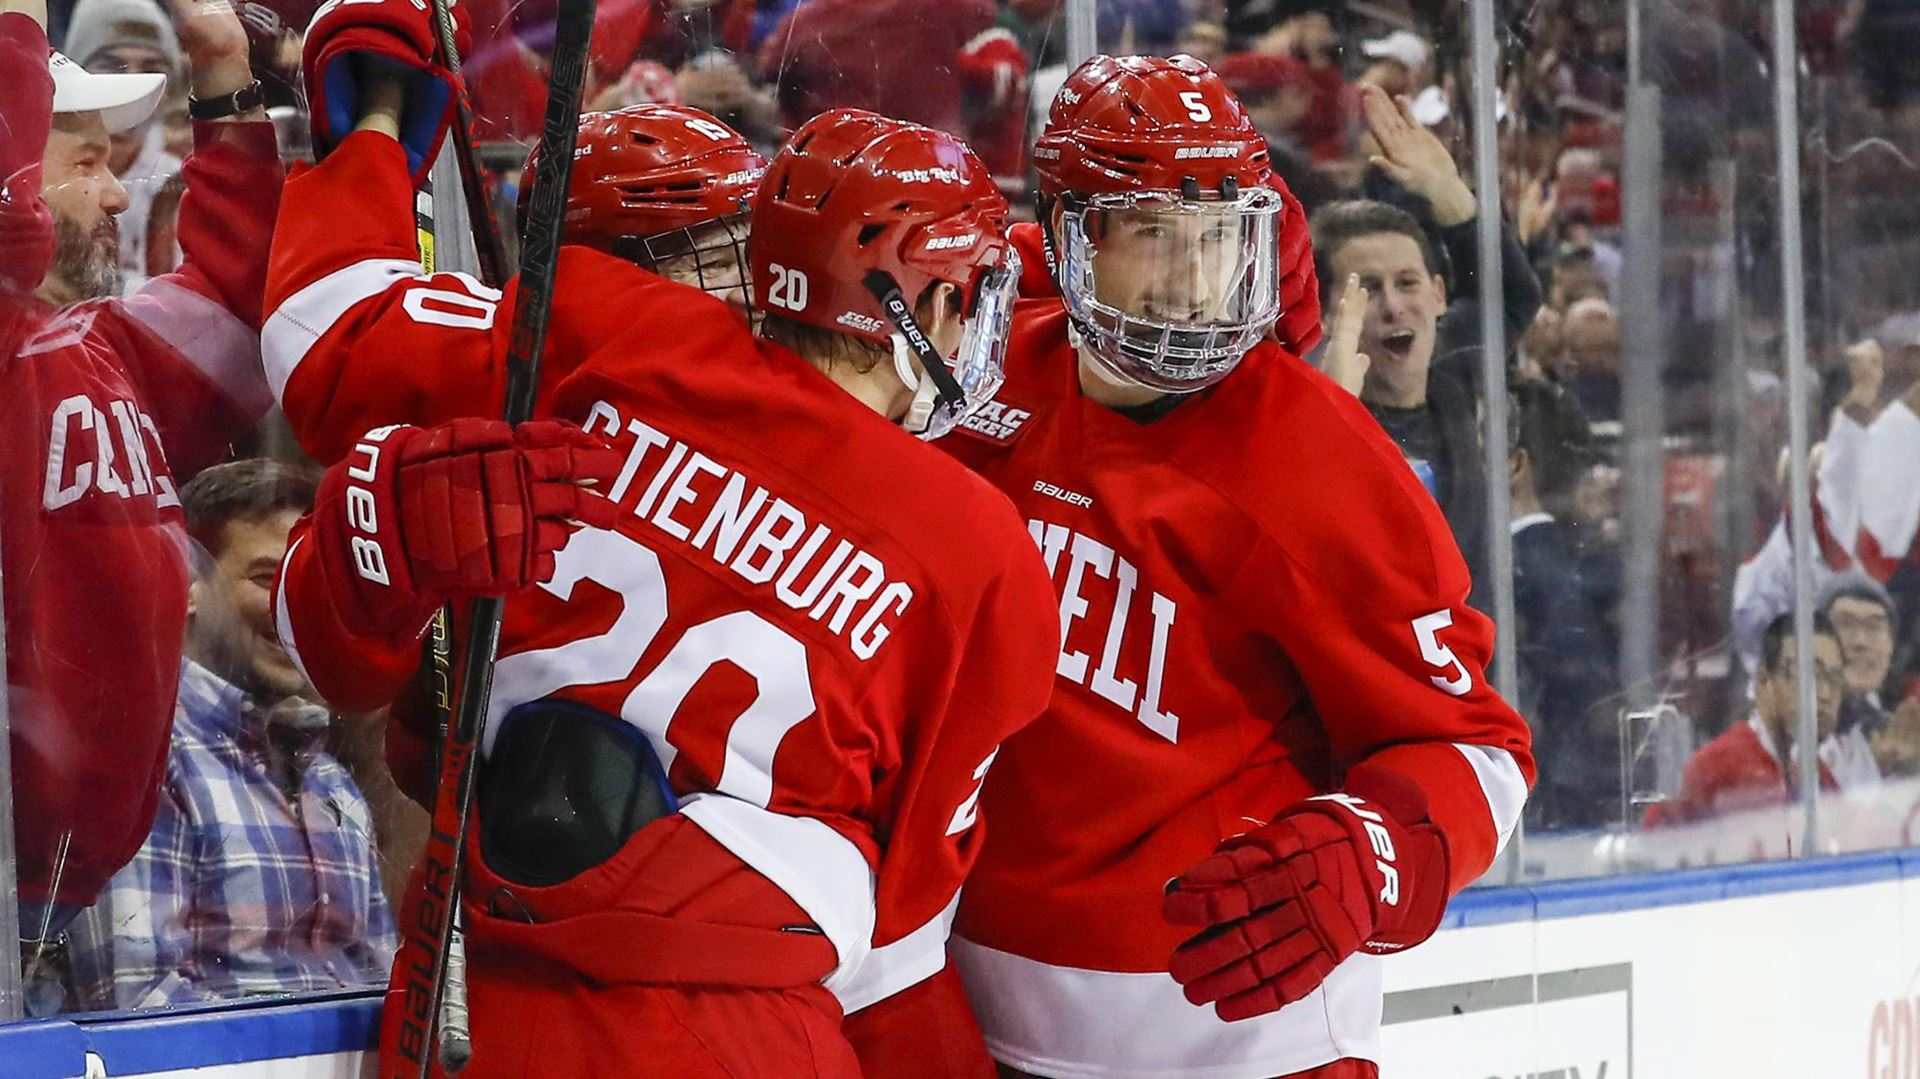 Cornell improves to 9-0 after shutting out Boston University, 2-0